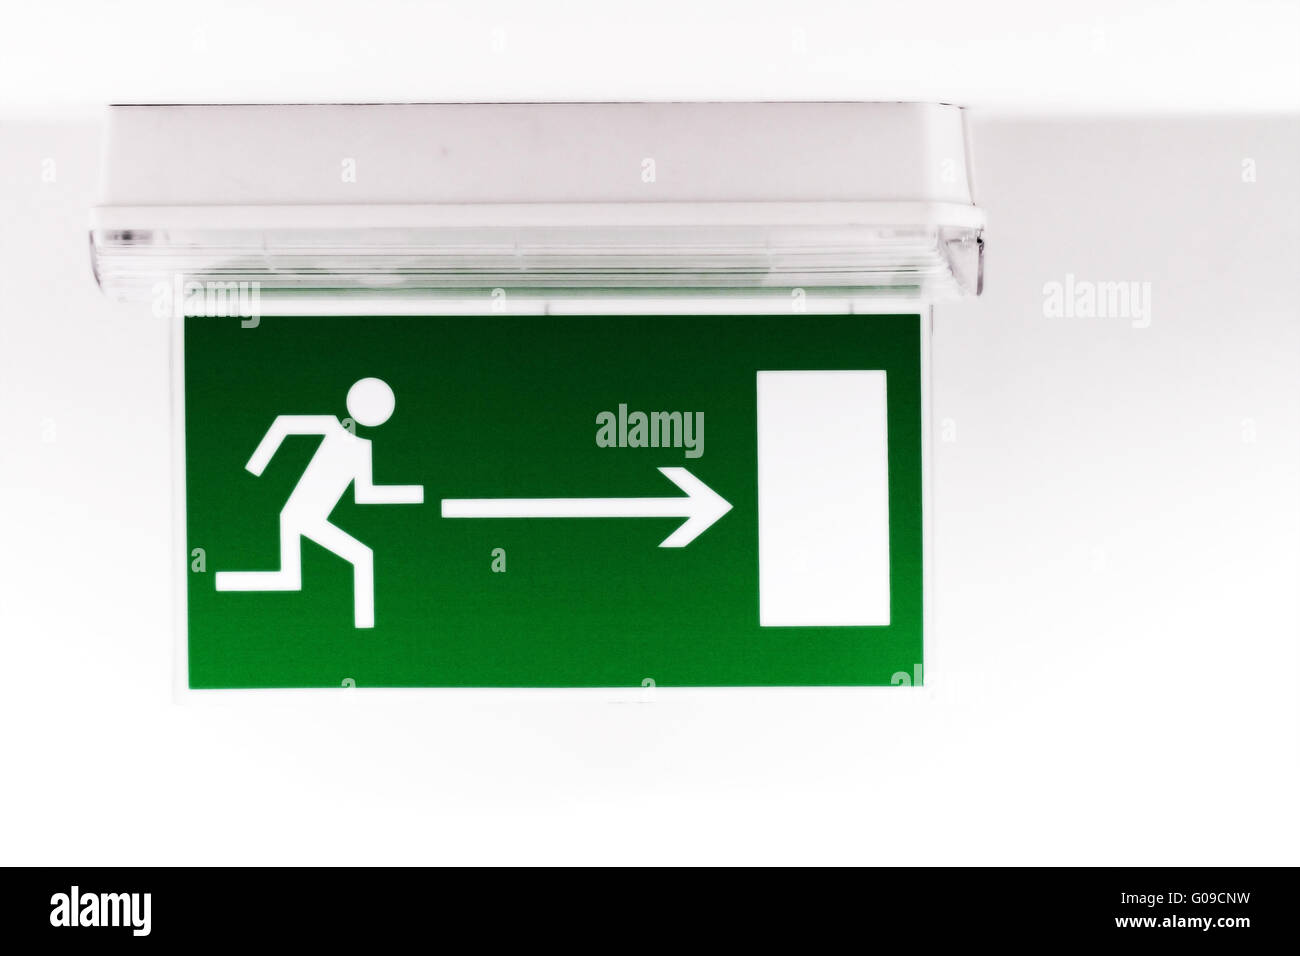 Emergency exit sign in a building glowing green - Stock Image